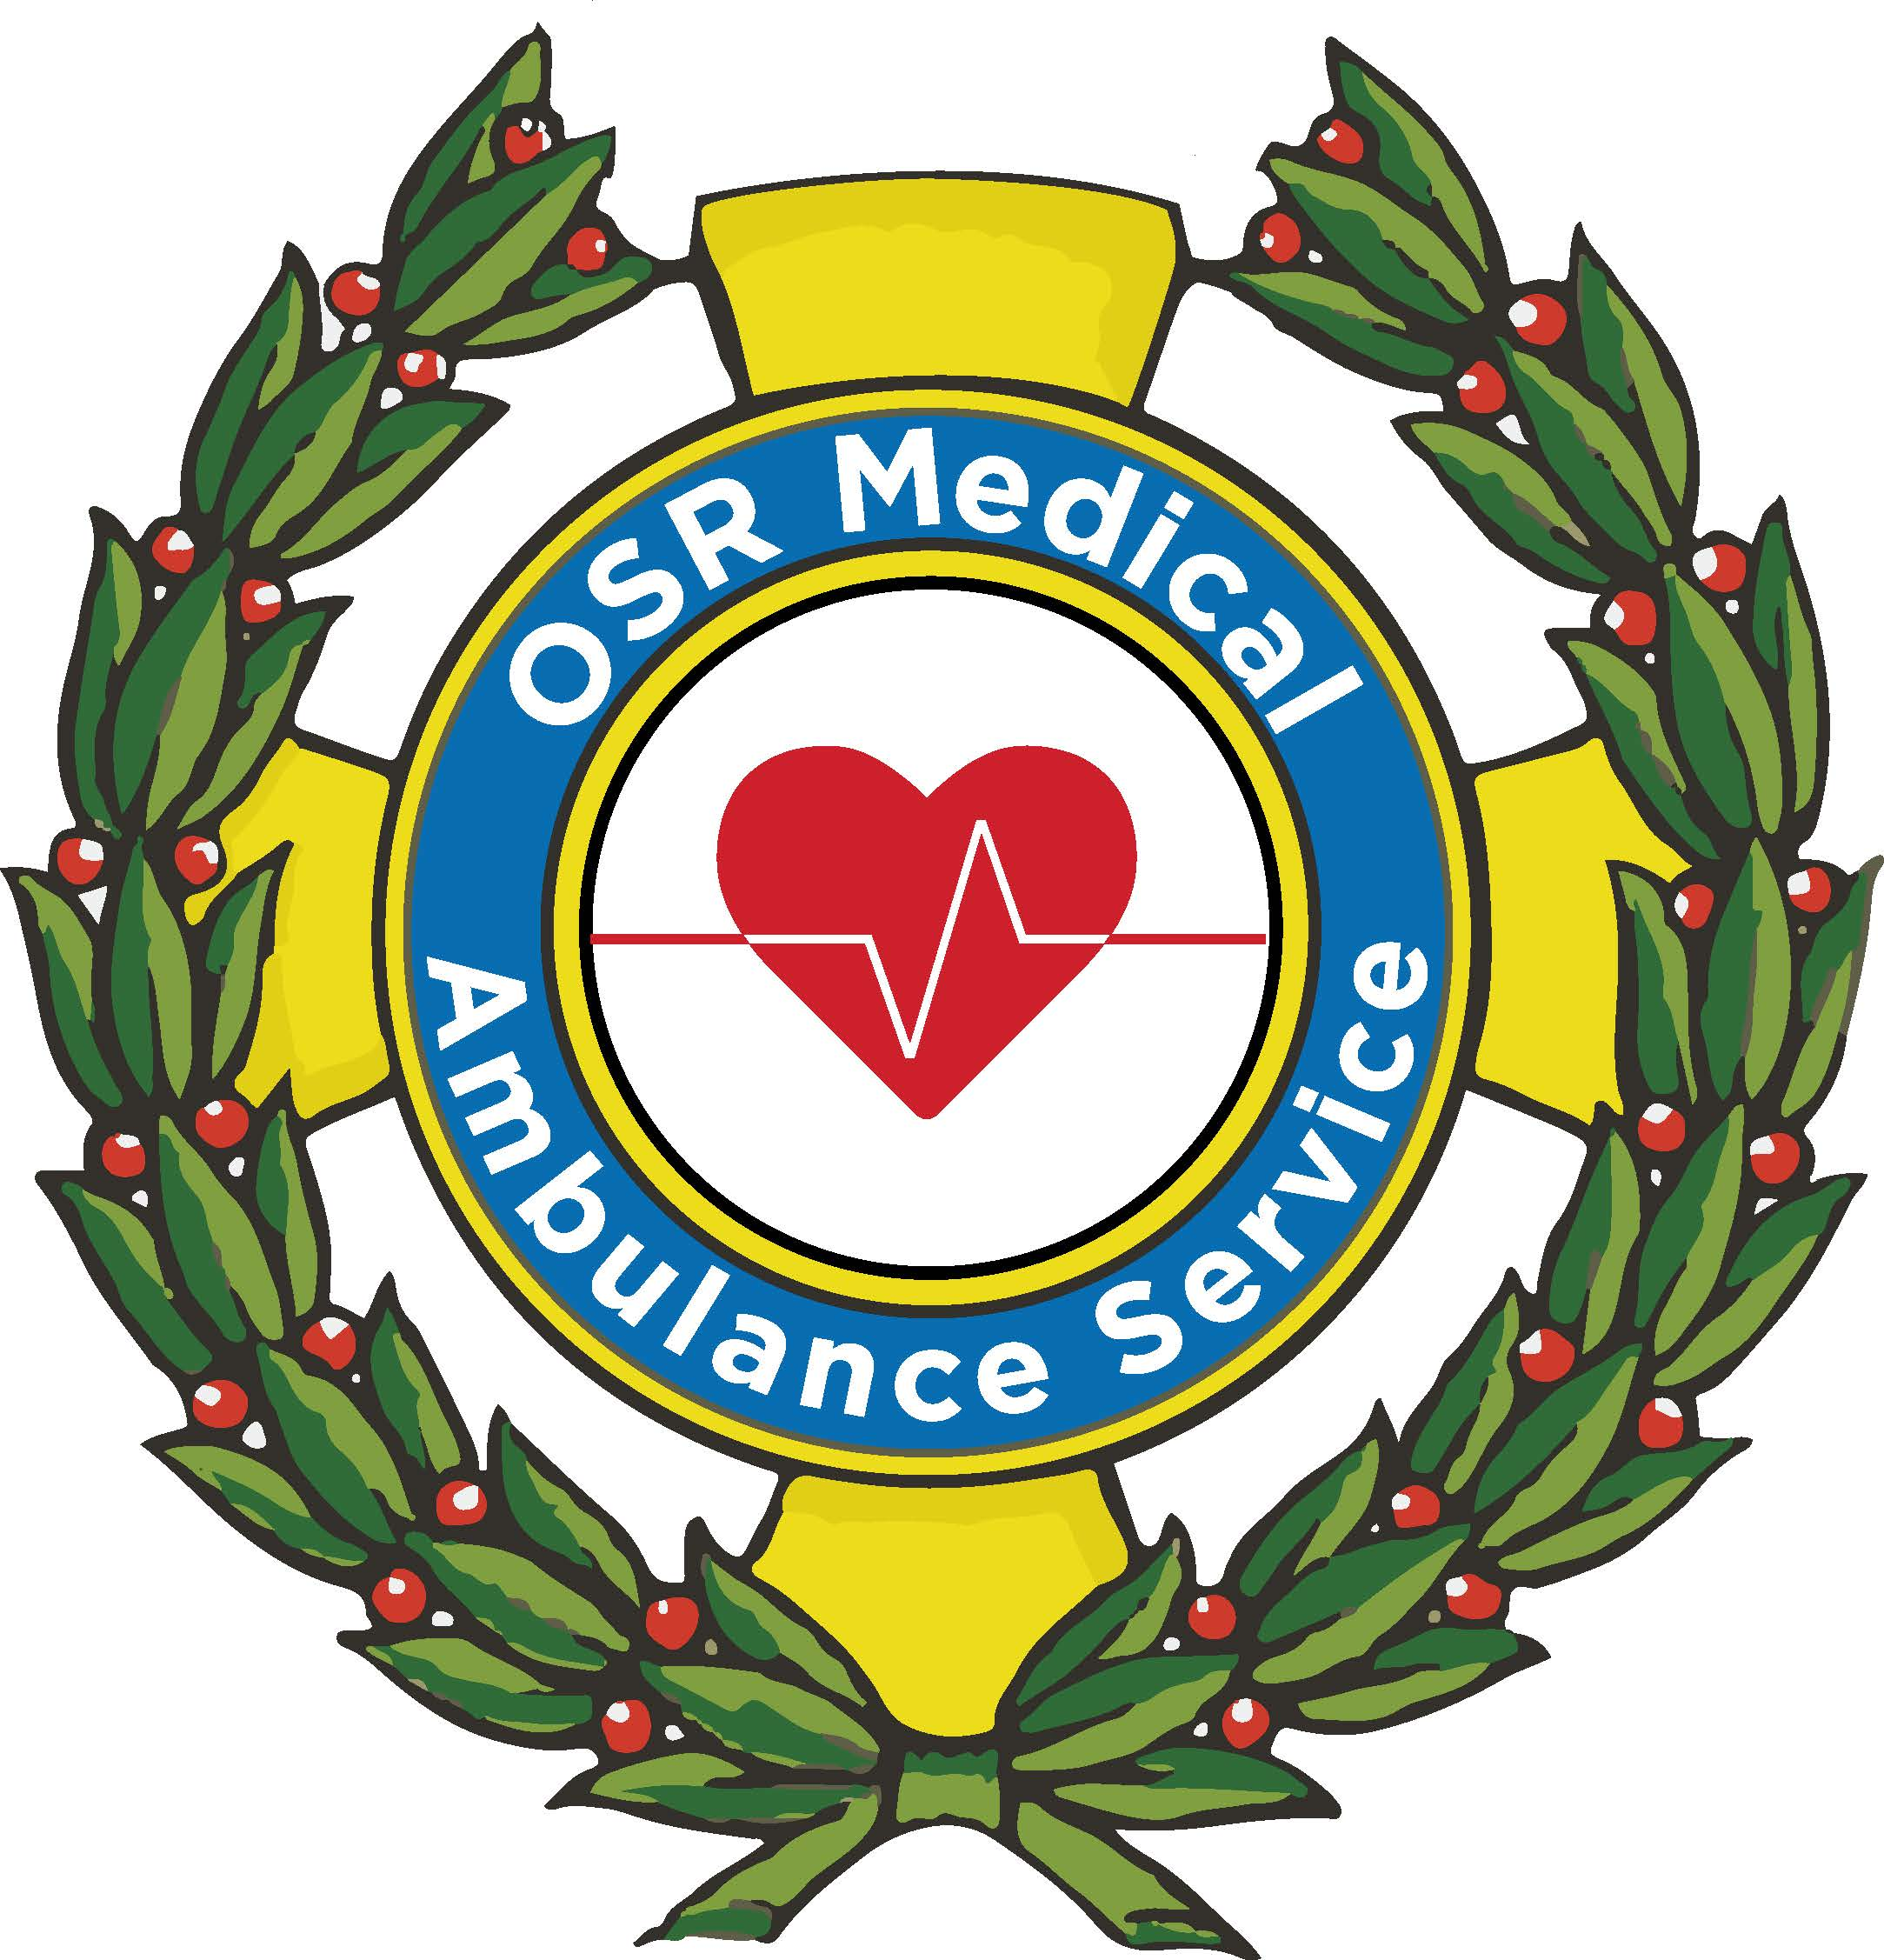 OSR Medical Ambulance Service - Quote. Contact Us, About Us, Services, Calculator. Feedback, Descriptions, NEMS, Home, Policies, Privacy, Recruitment, incident